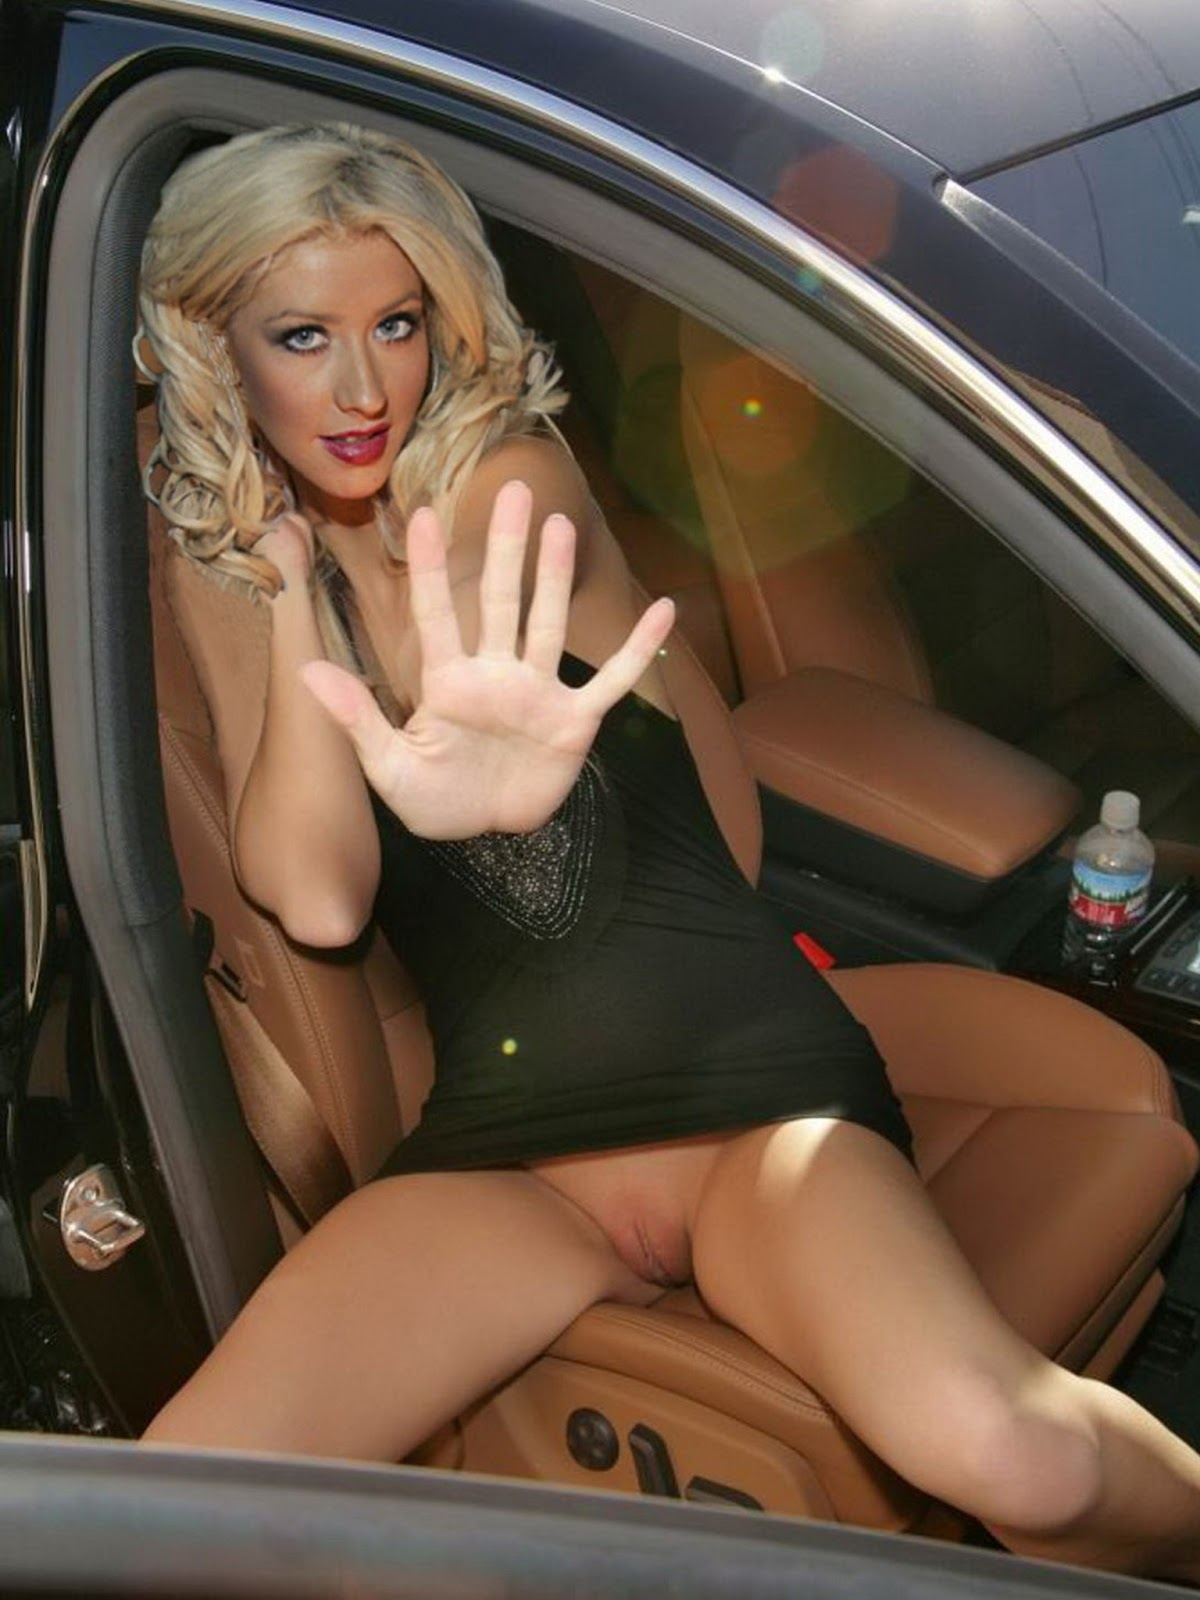 Fuck! free christina aguilera upskirt picks best bitch